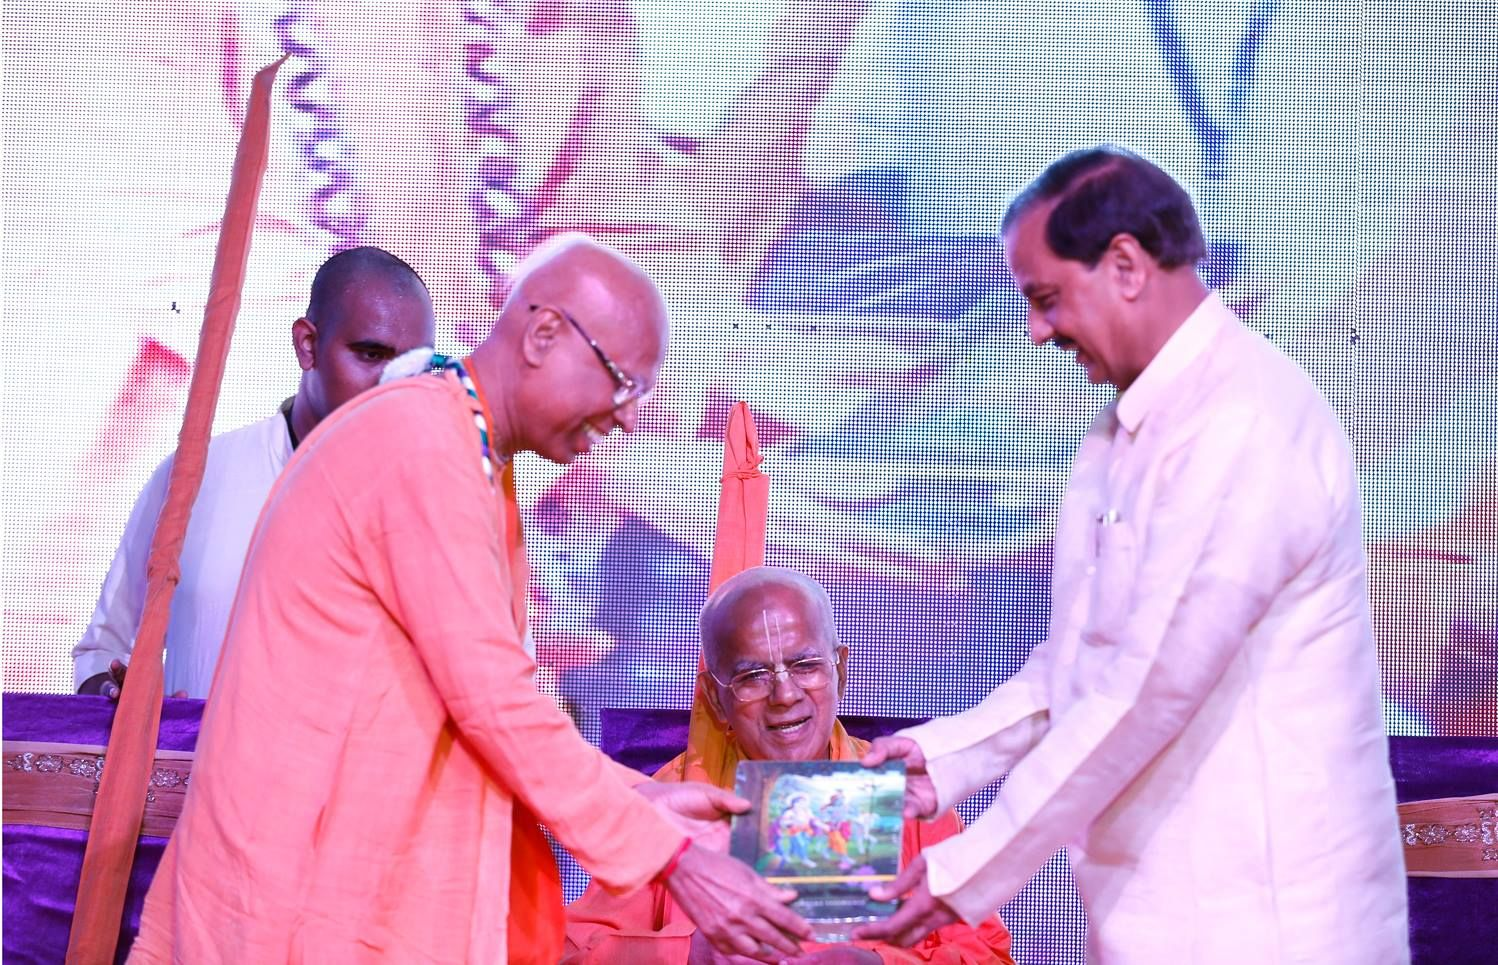 By Yudhistir Govinda Das On May 28, 2016, ISKCON celebrated the 500th anniversary of Lord Chaitanya's visit to Vrindavan at the famous Talkatora Indoor Stadium in New Delhi.  The Festival of …